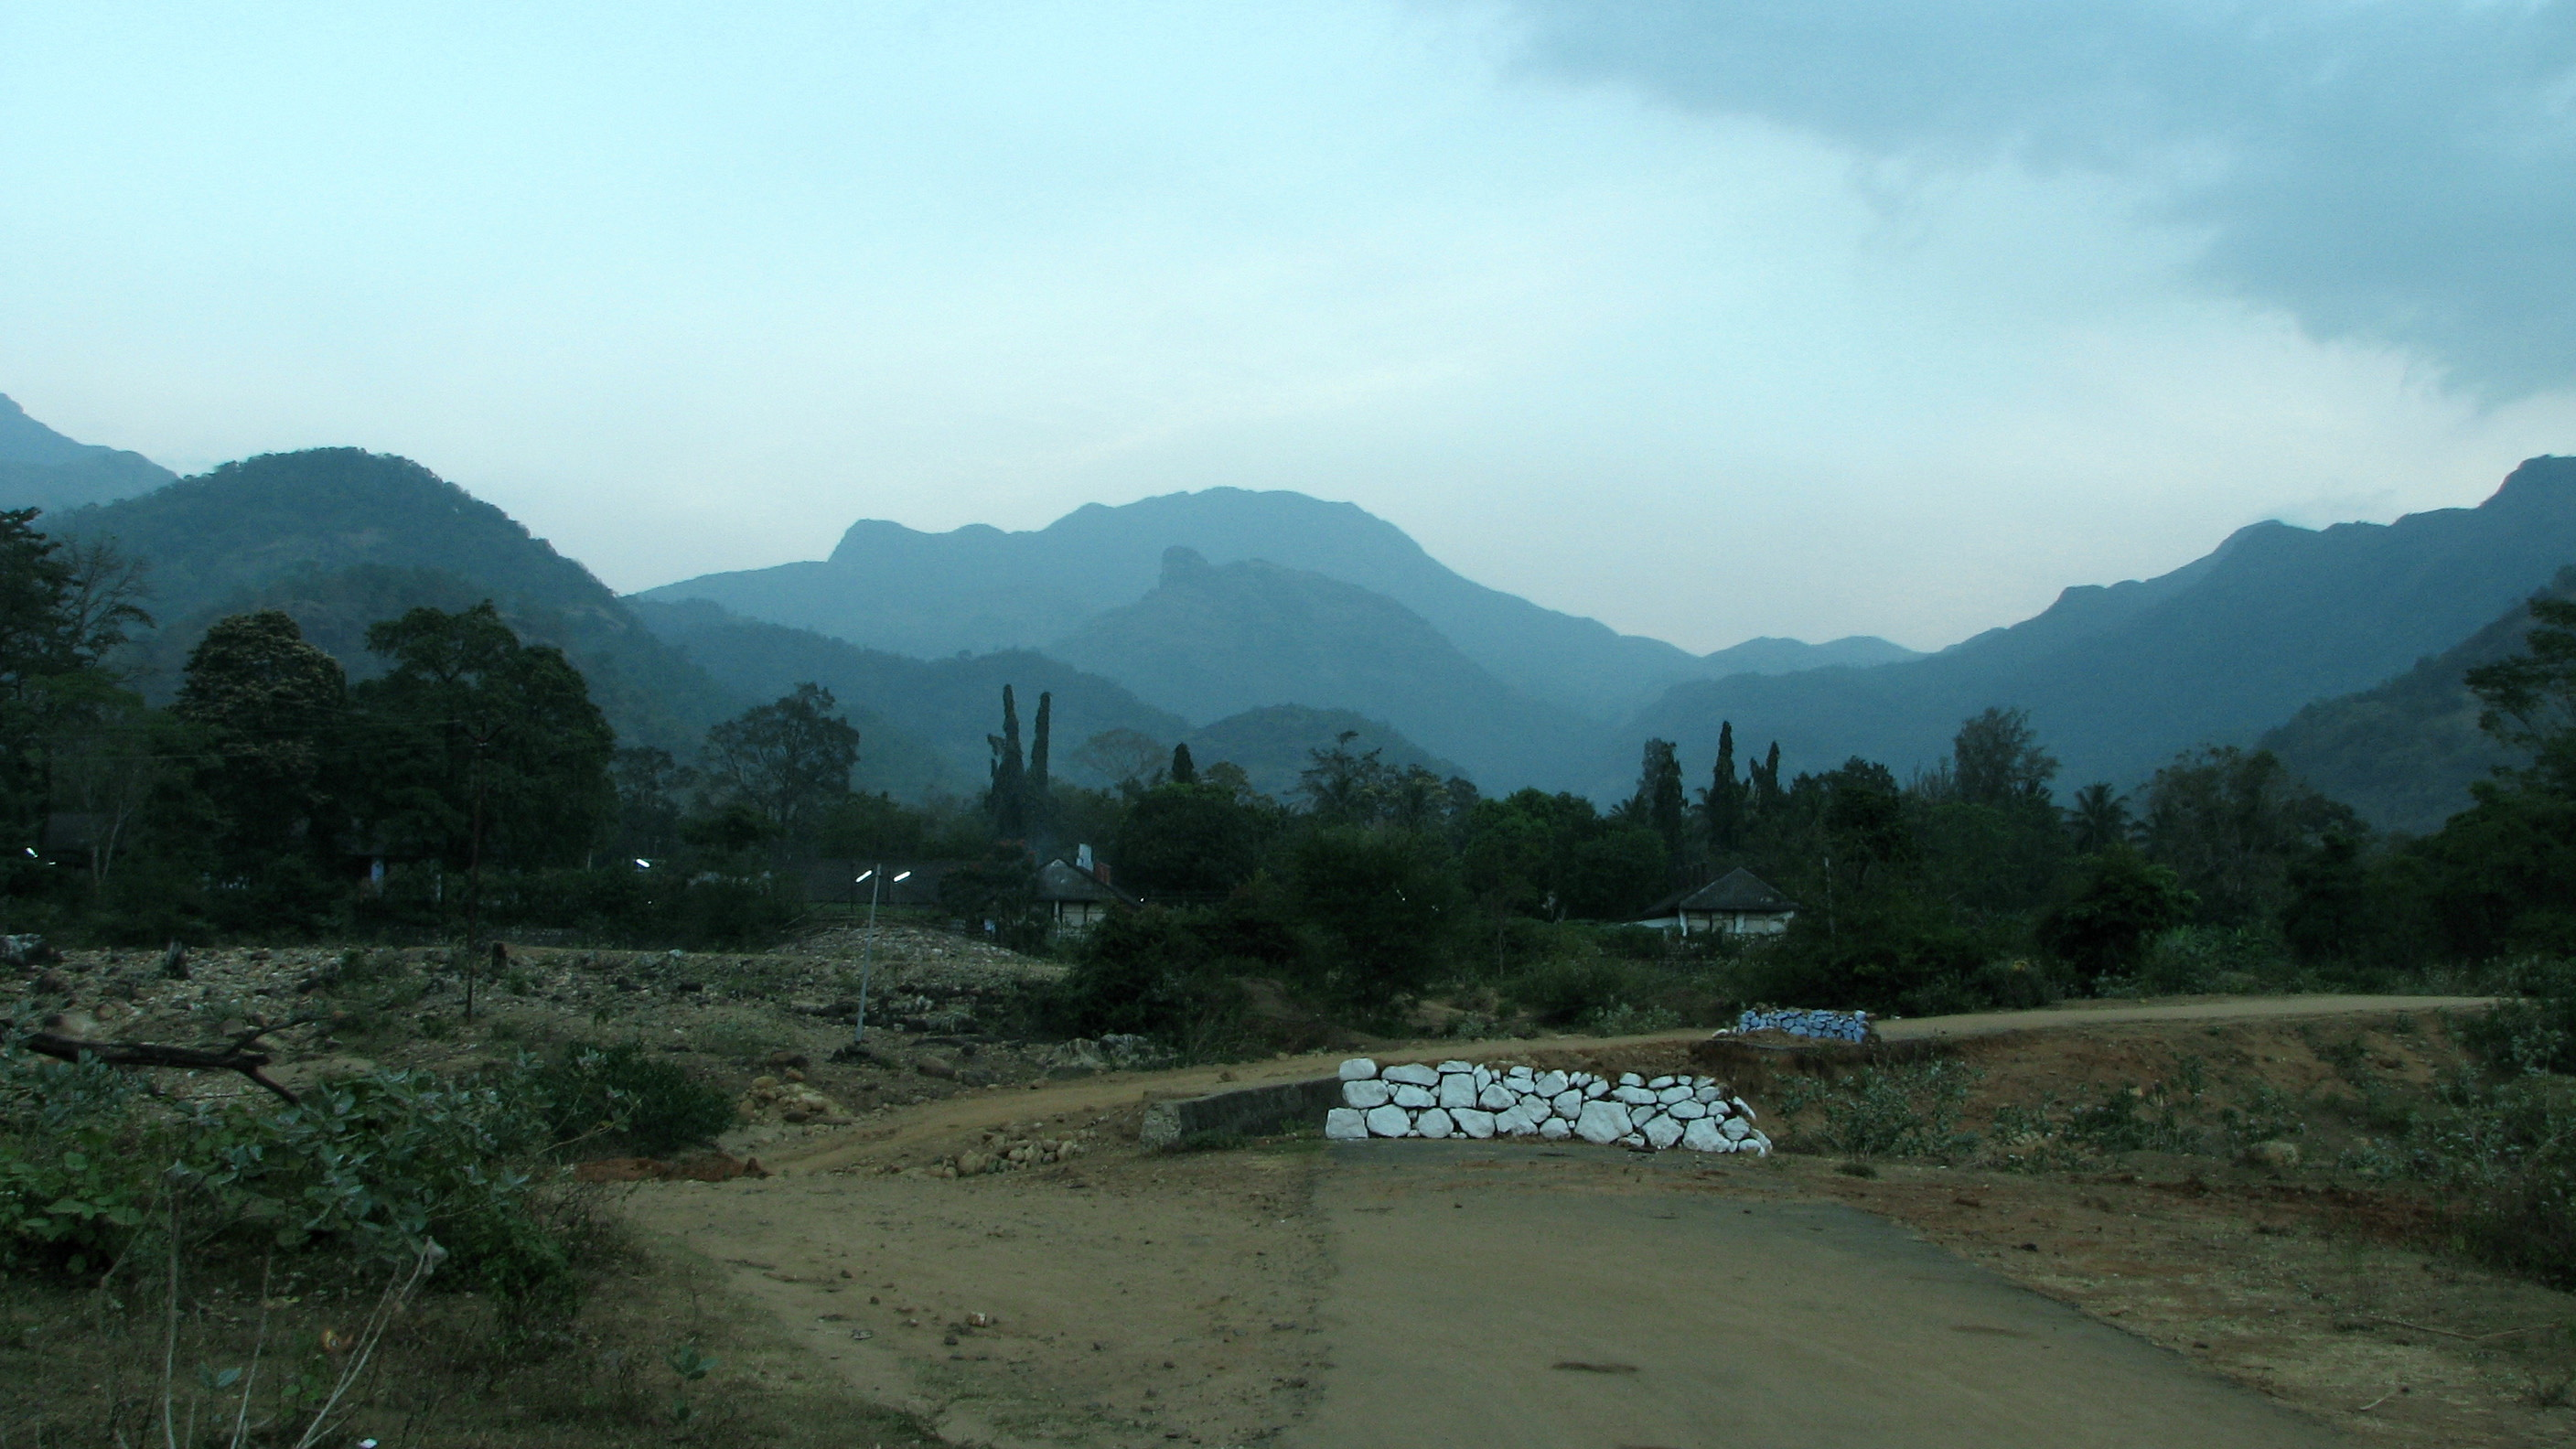 View of the Western Ghats at Keeriparai, Kanyakumari District, in Tamil Nadu, near the southern end of the range